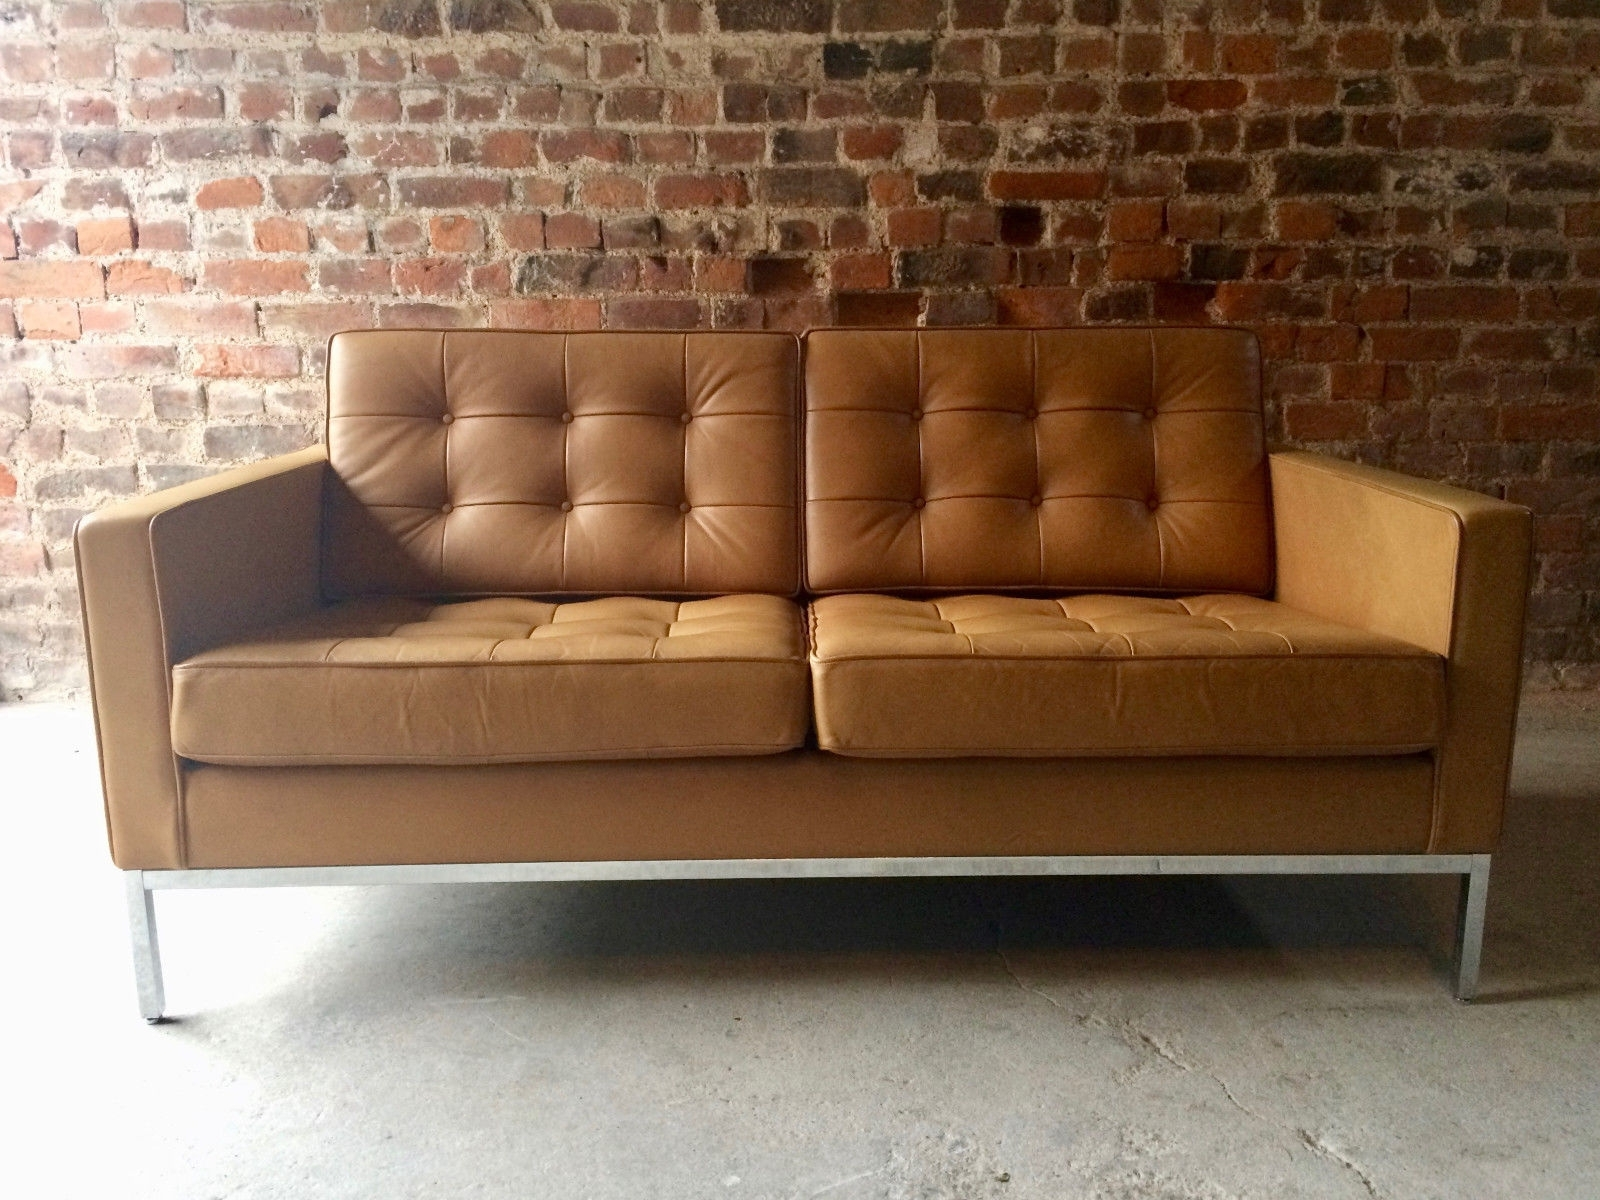 Vintage 2-Seater Leather Sofaflorence Knoll For Knoll For Sale with Most Recent Florence Sofas And Loveseats